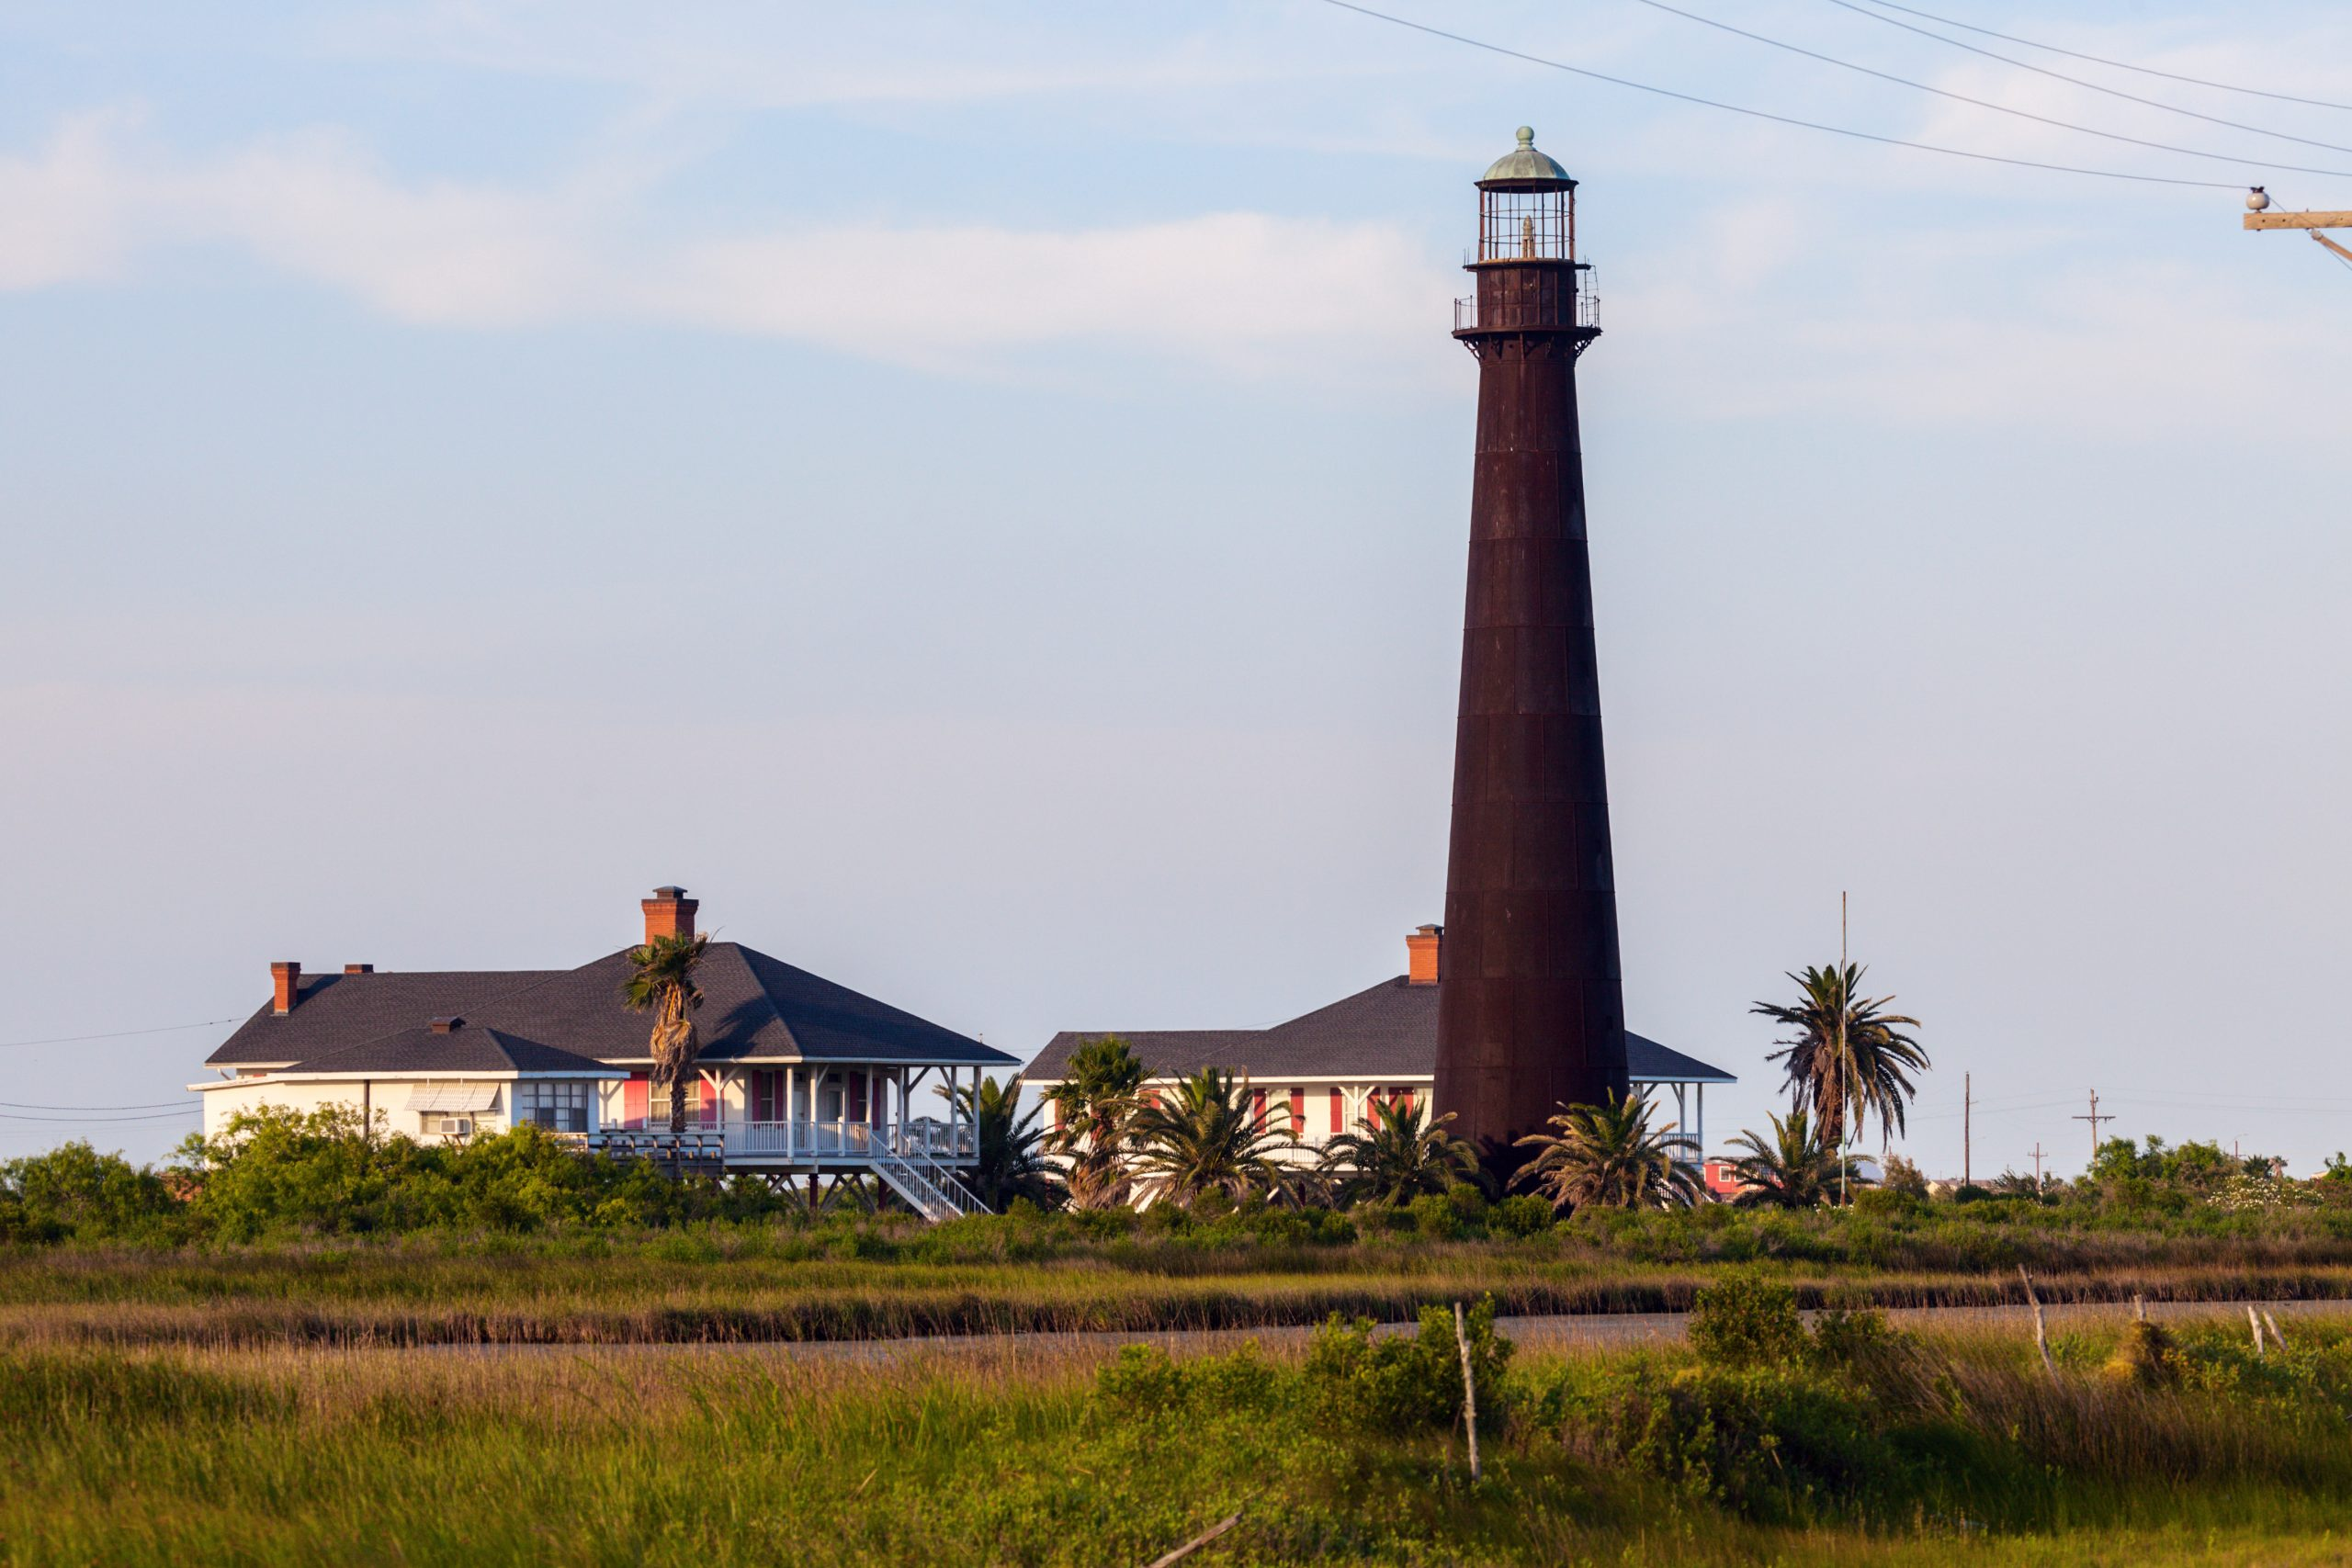 black point bolivar lighthouse with keepers cottages, one of the best texas lighthouses to visit